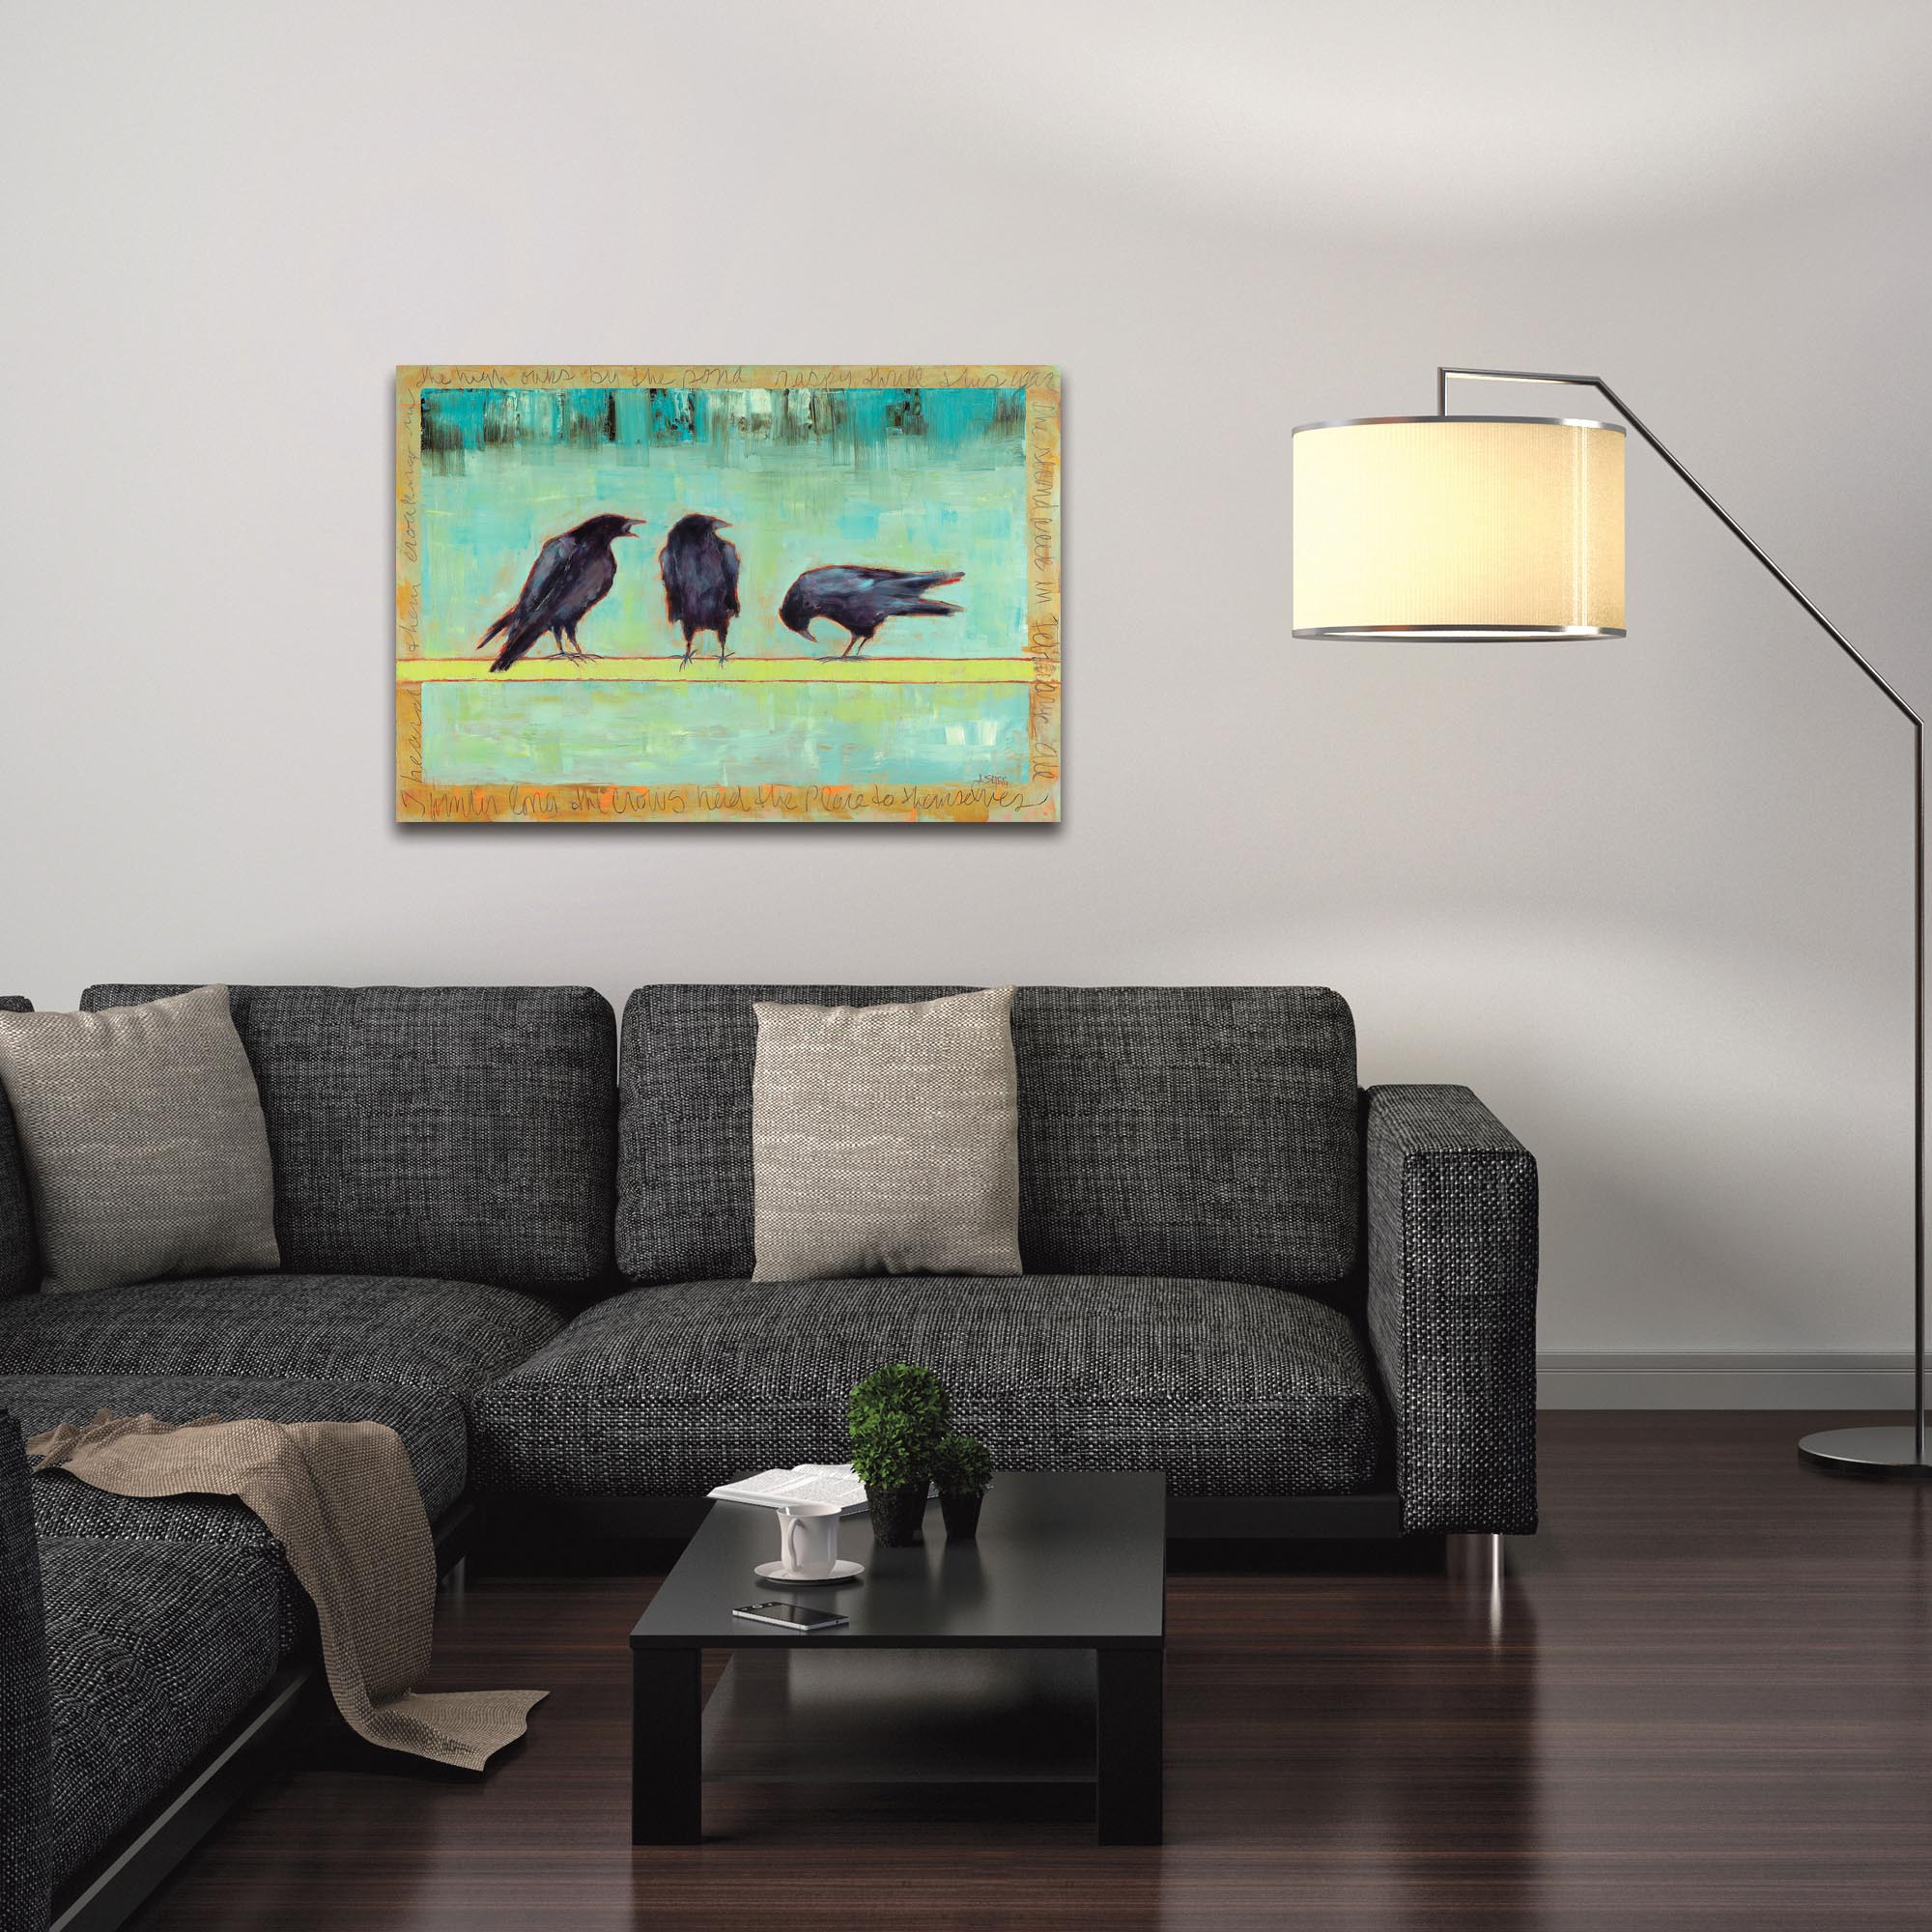 Contemporary Wall Art 'Crow Bar 1' - Urban Birds Decor on Metal or Plexiglass - Lifestyle View